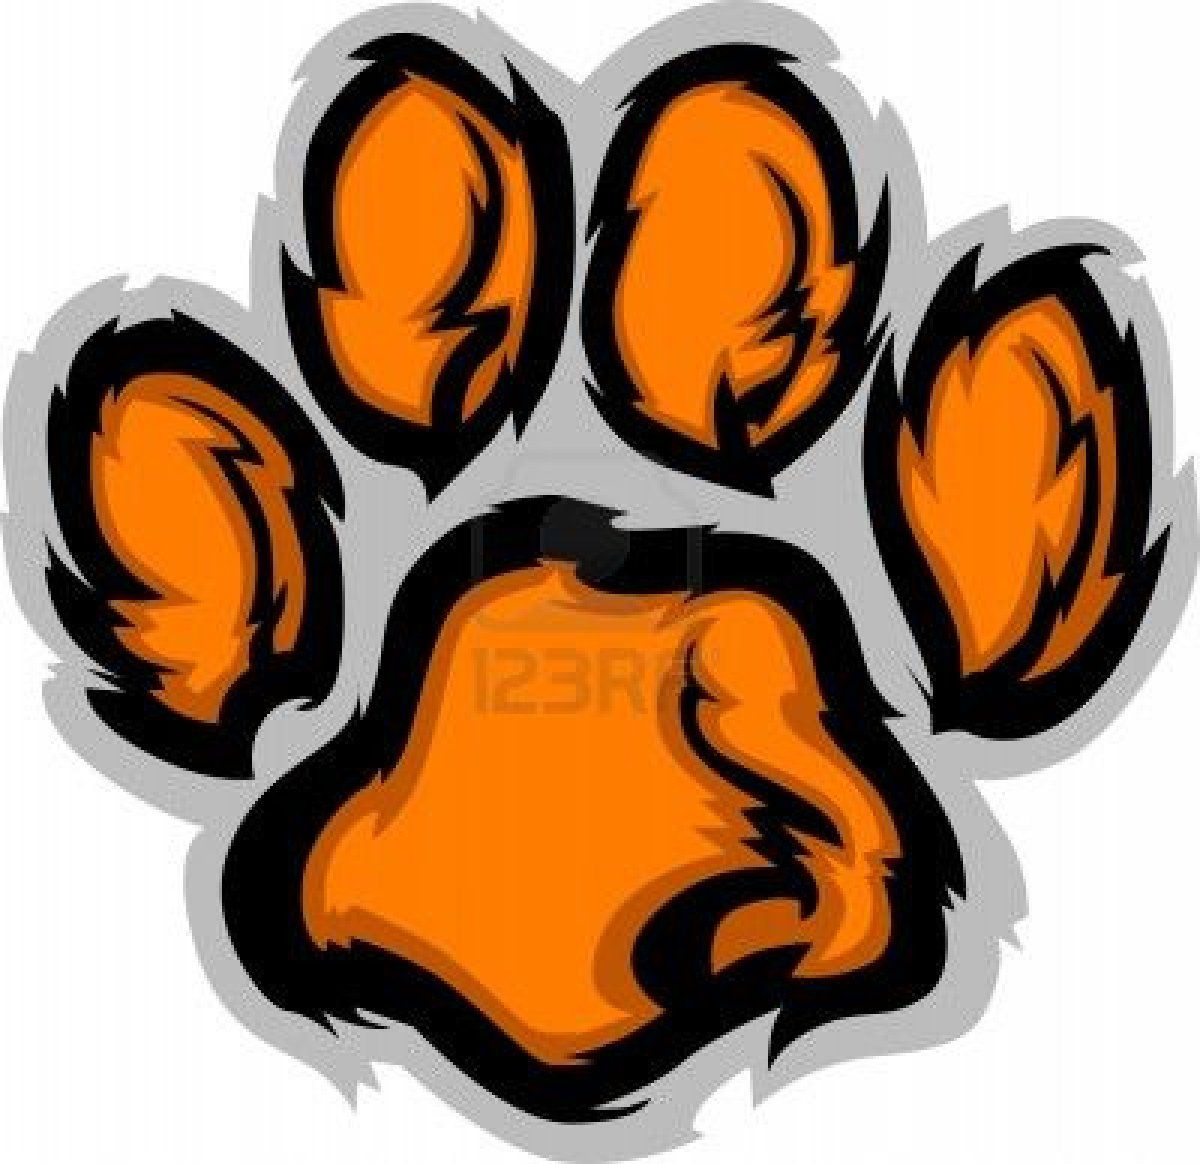 image detail for tiger paw graphic mascot vector image royalty rh pinterest com Tiger Baseball Clip Art Tiger Clip Art